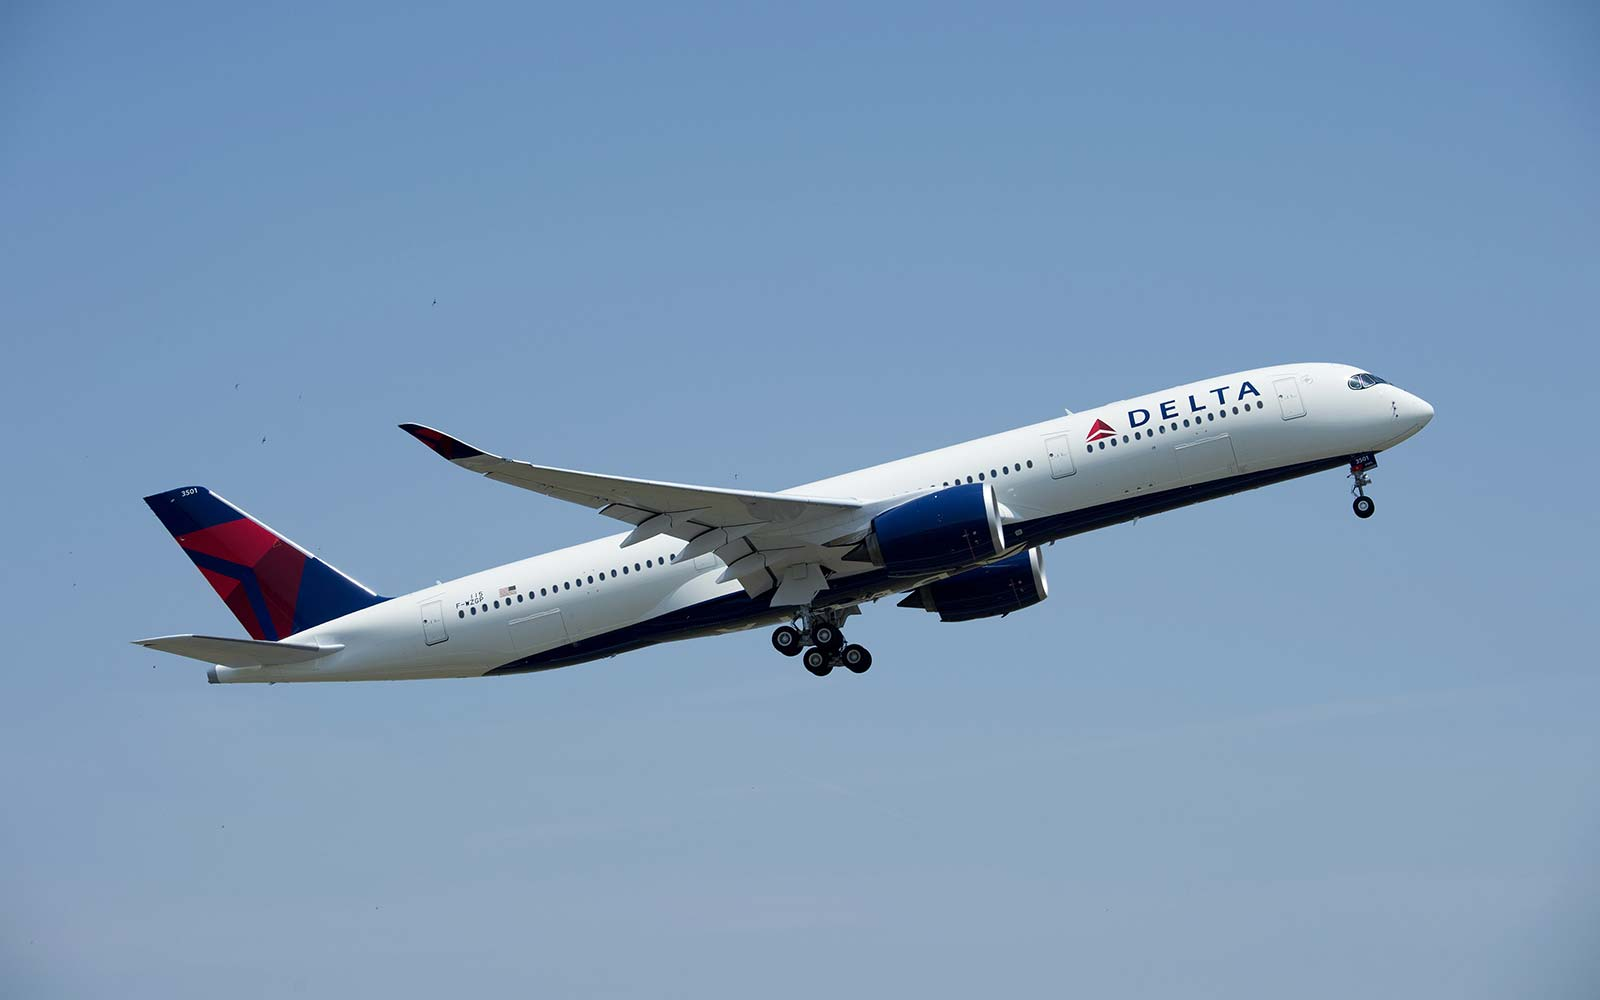 Delta Airlines Airbus A350 plane